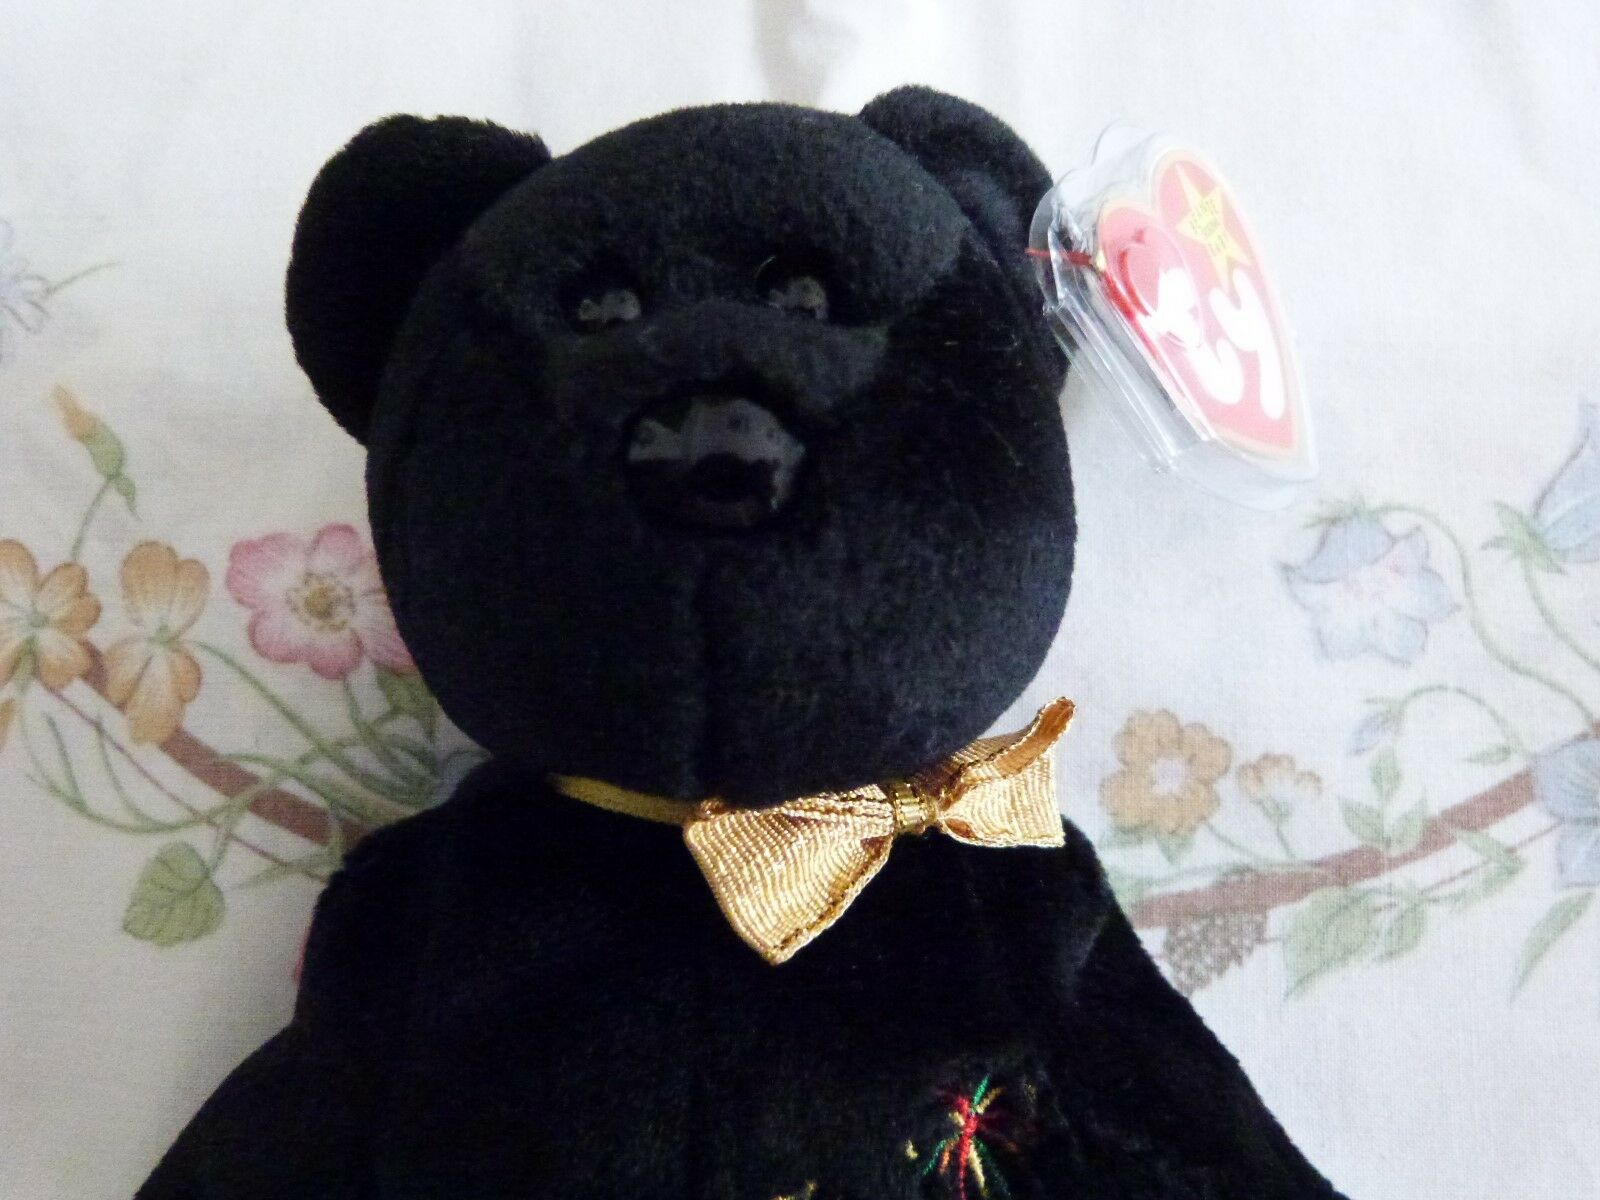 b4826daa782 TY BEAR THE COLLECTABLE END COLLECTABLE THE 8fa4d4 - enyinstitute.com